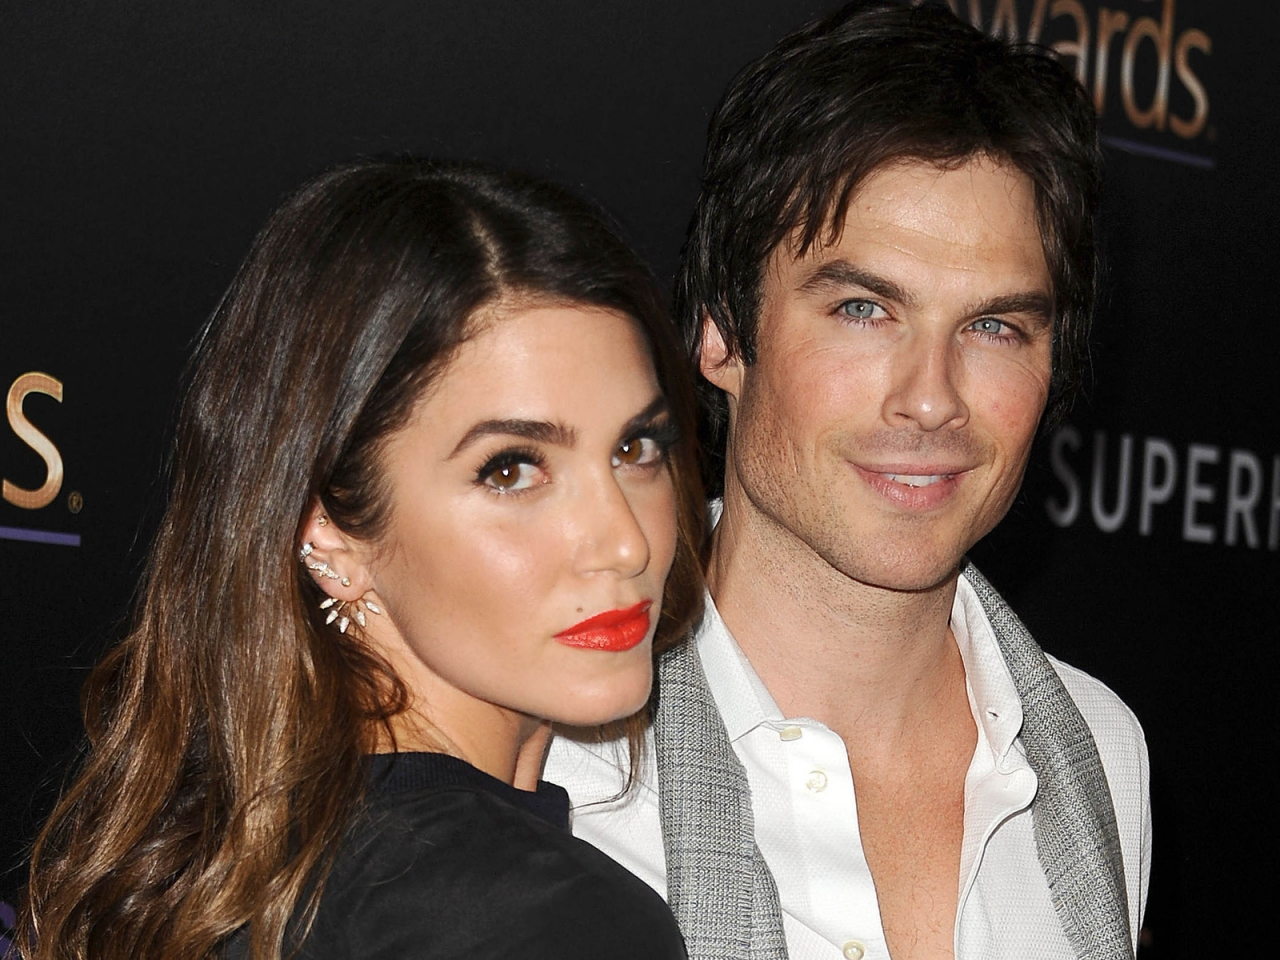 Nikki Reed and Ian Somerhalder for 1280 x 960 resolution